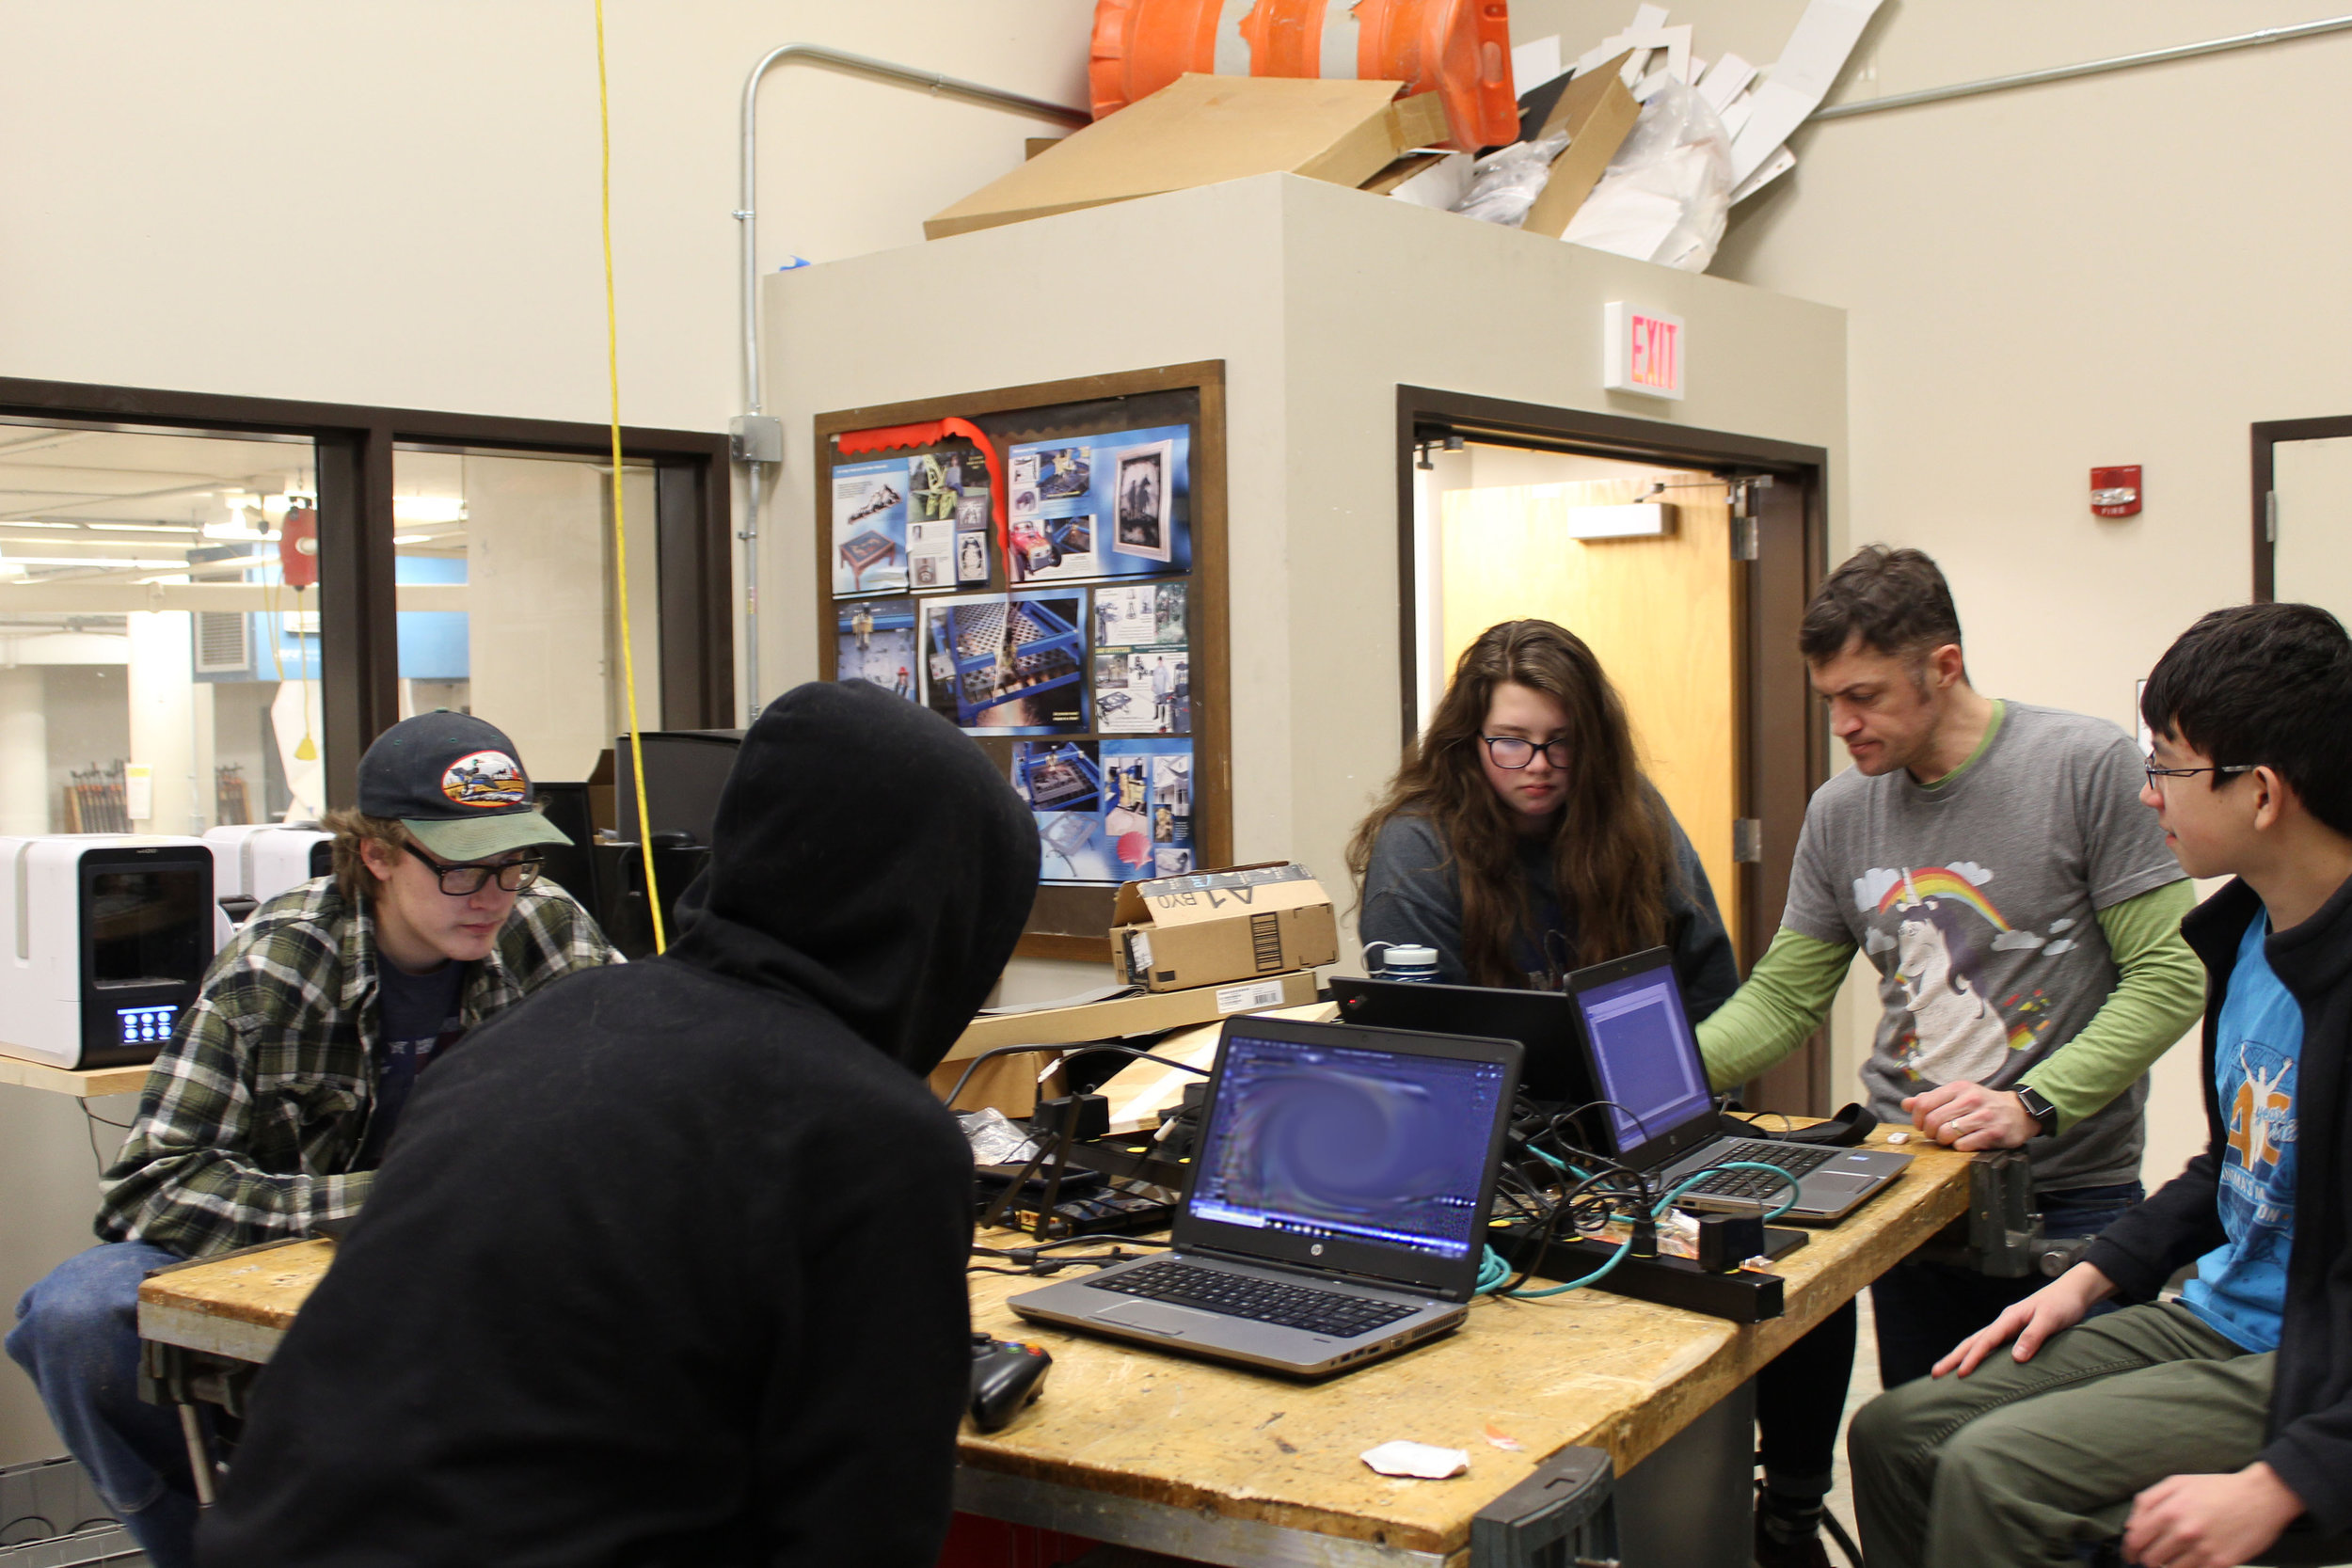 Programming Department, Jared, Tobi, Harper, and Ike working together to code the robot.